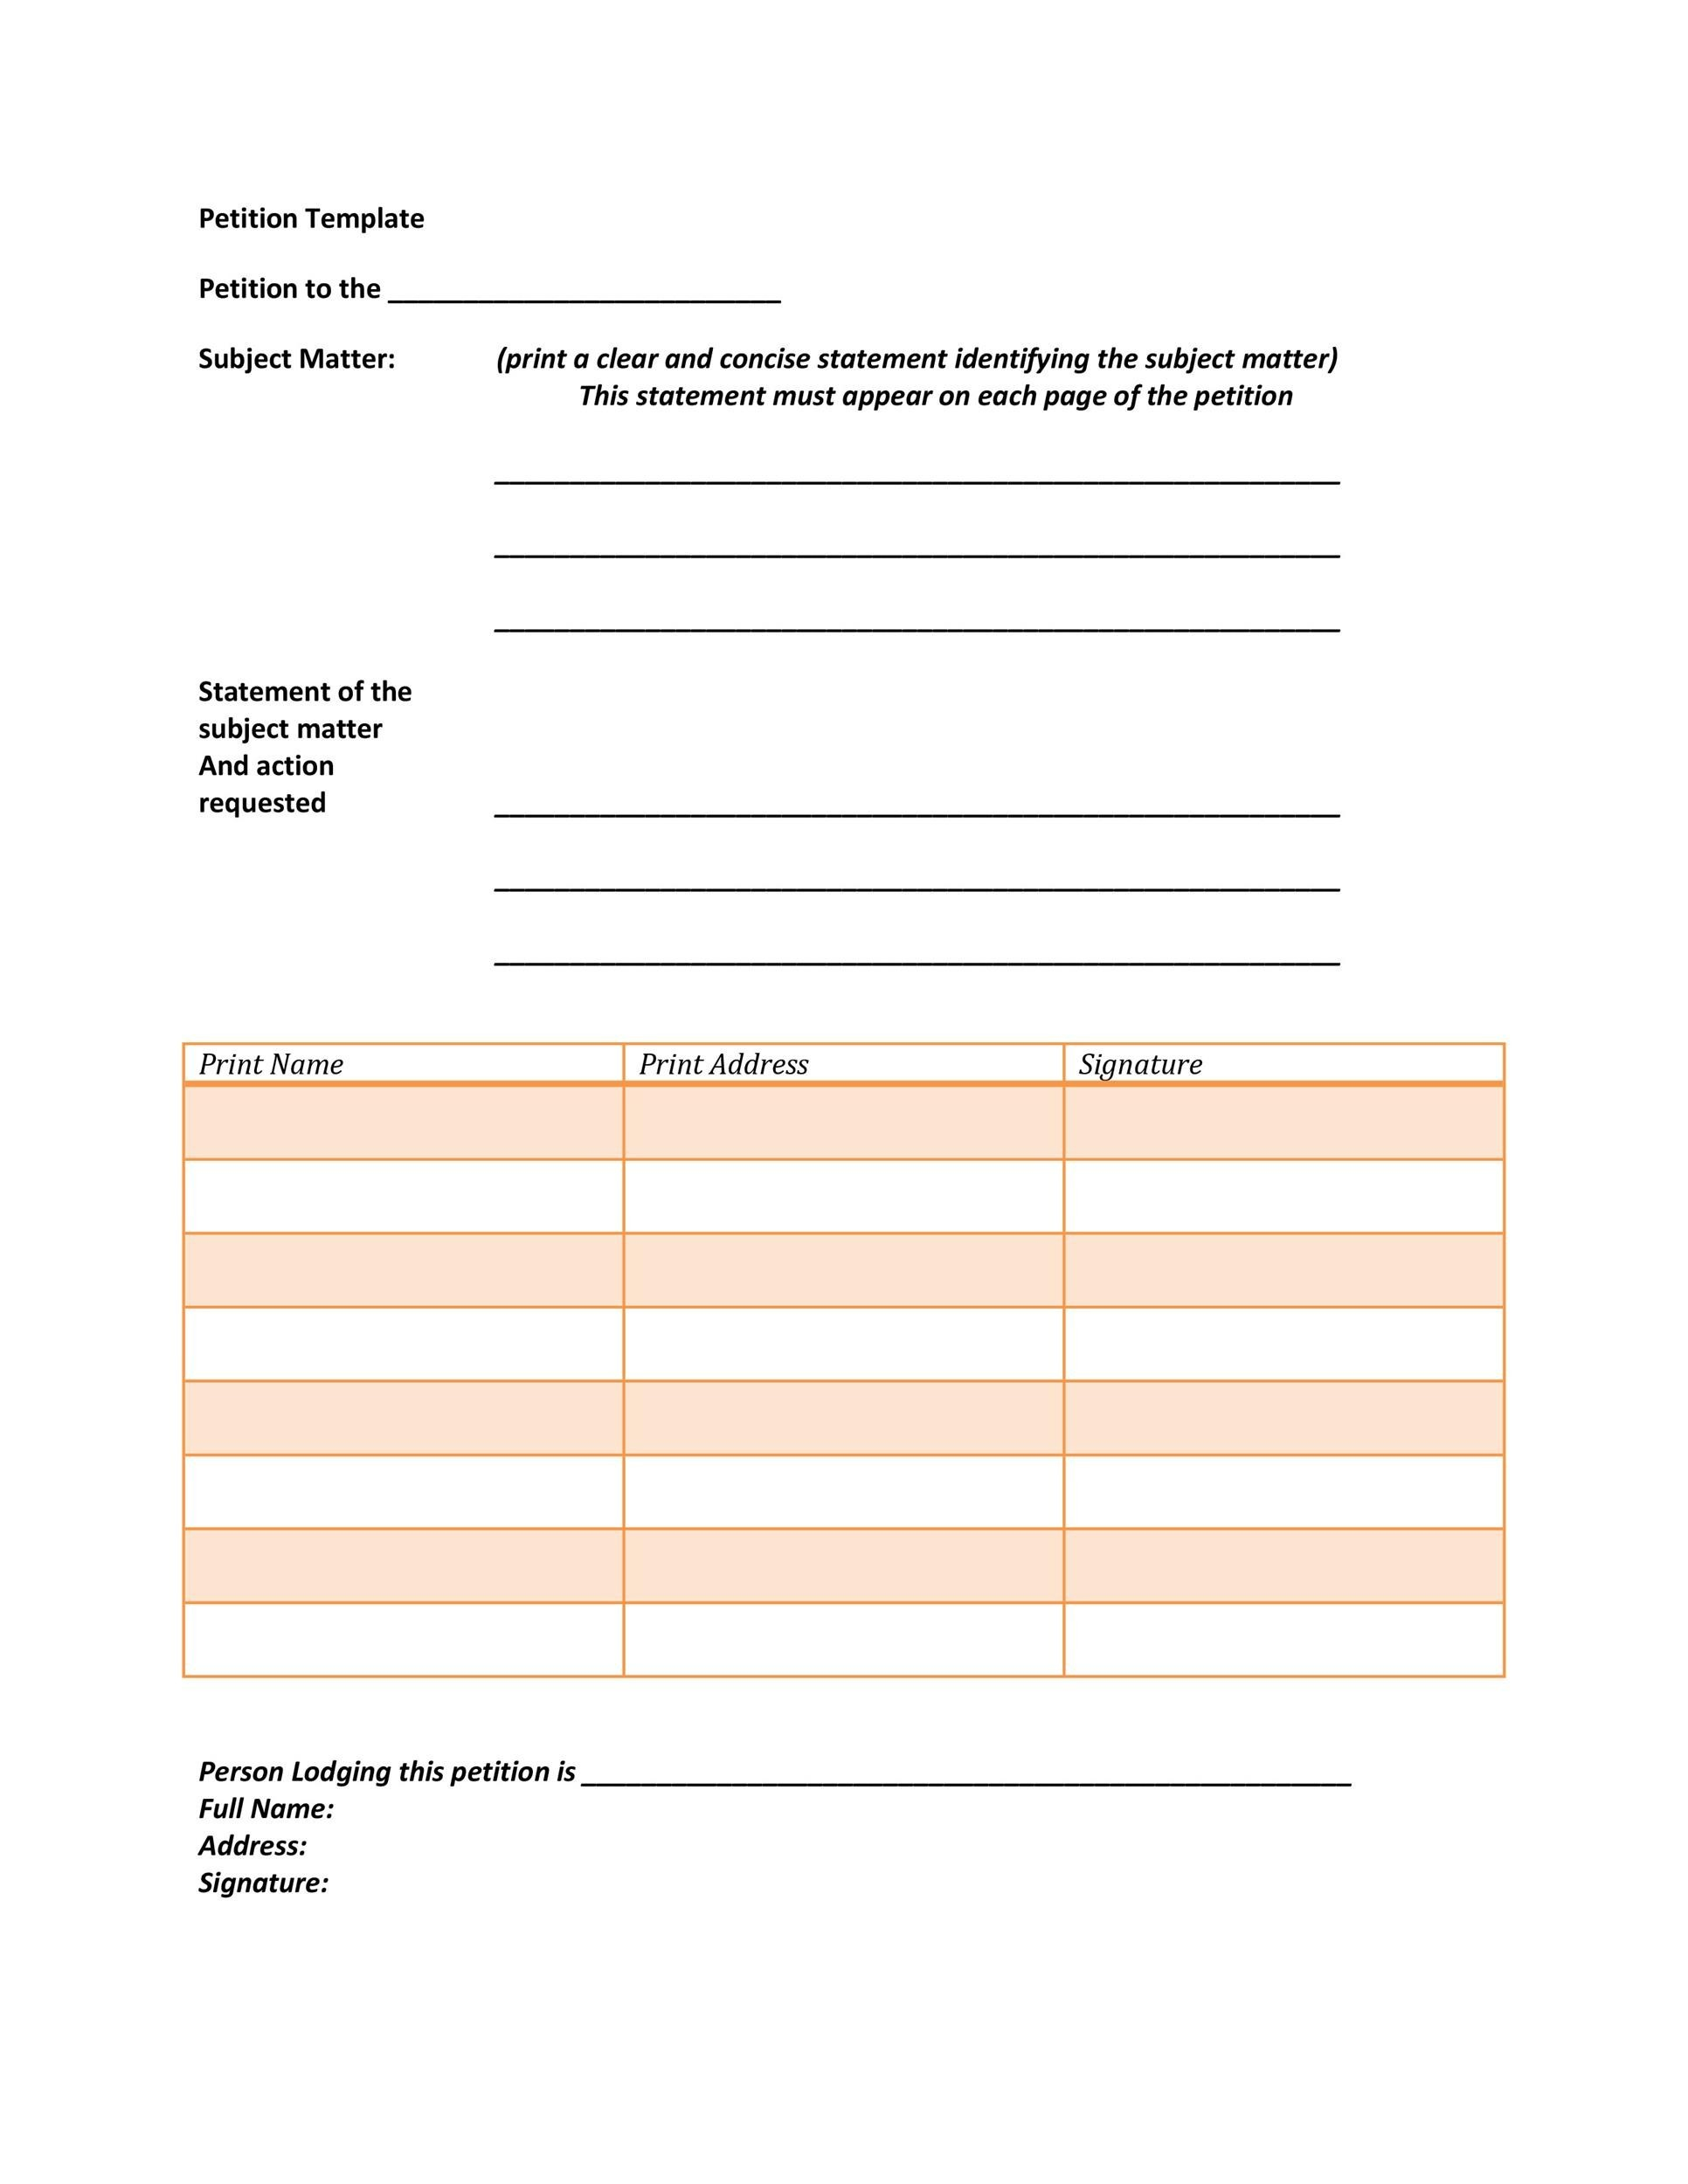 30 Petition Templates + How To Write Petition Guide - free petition templates examples